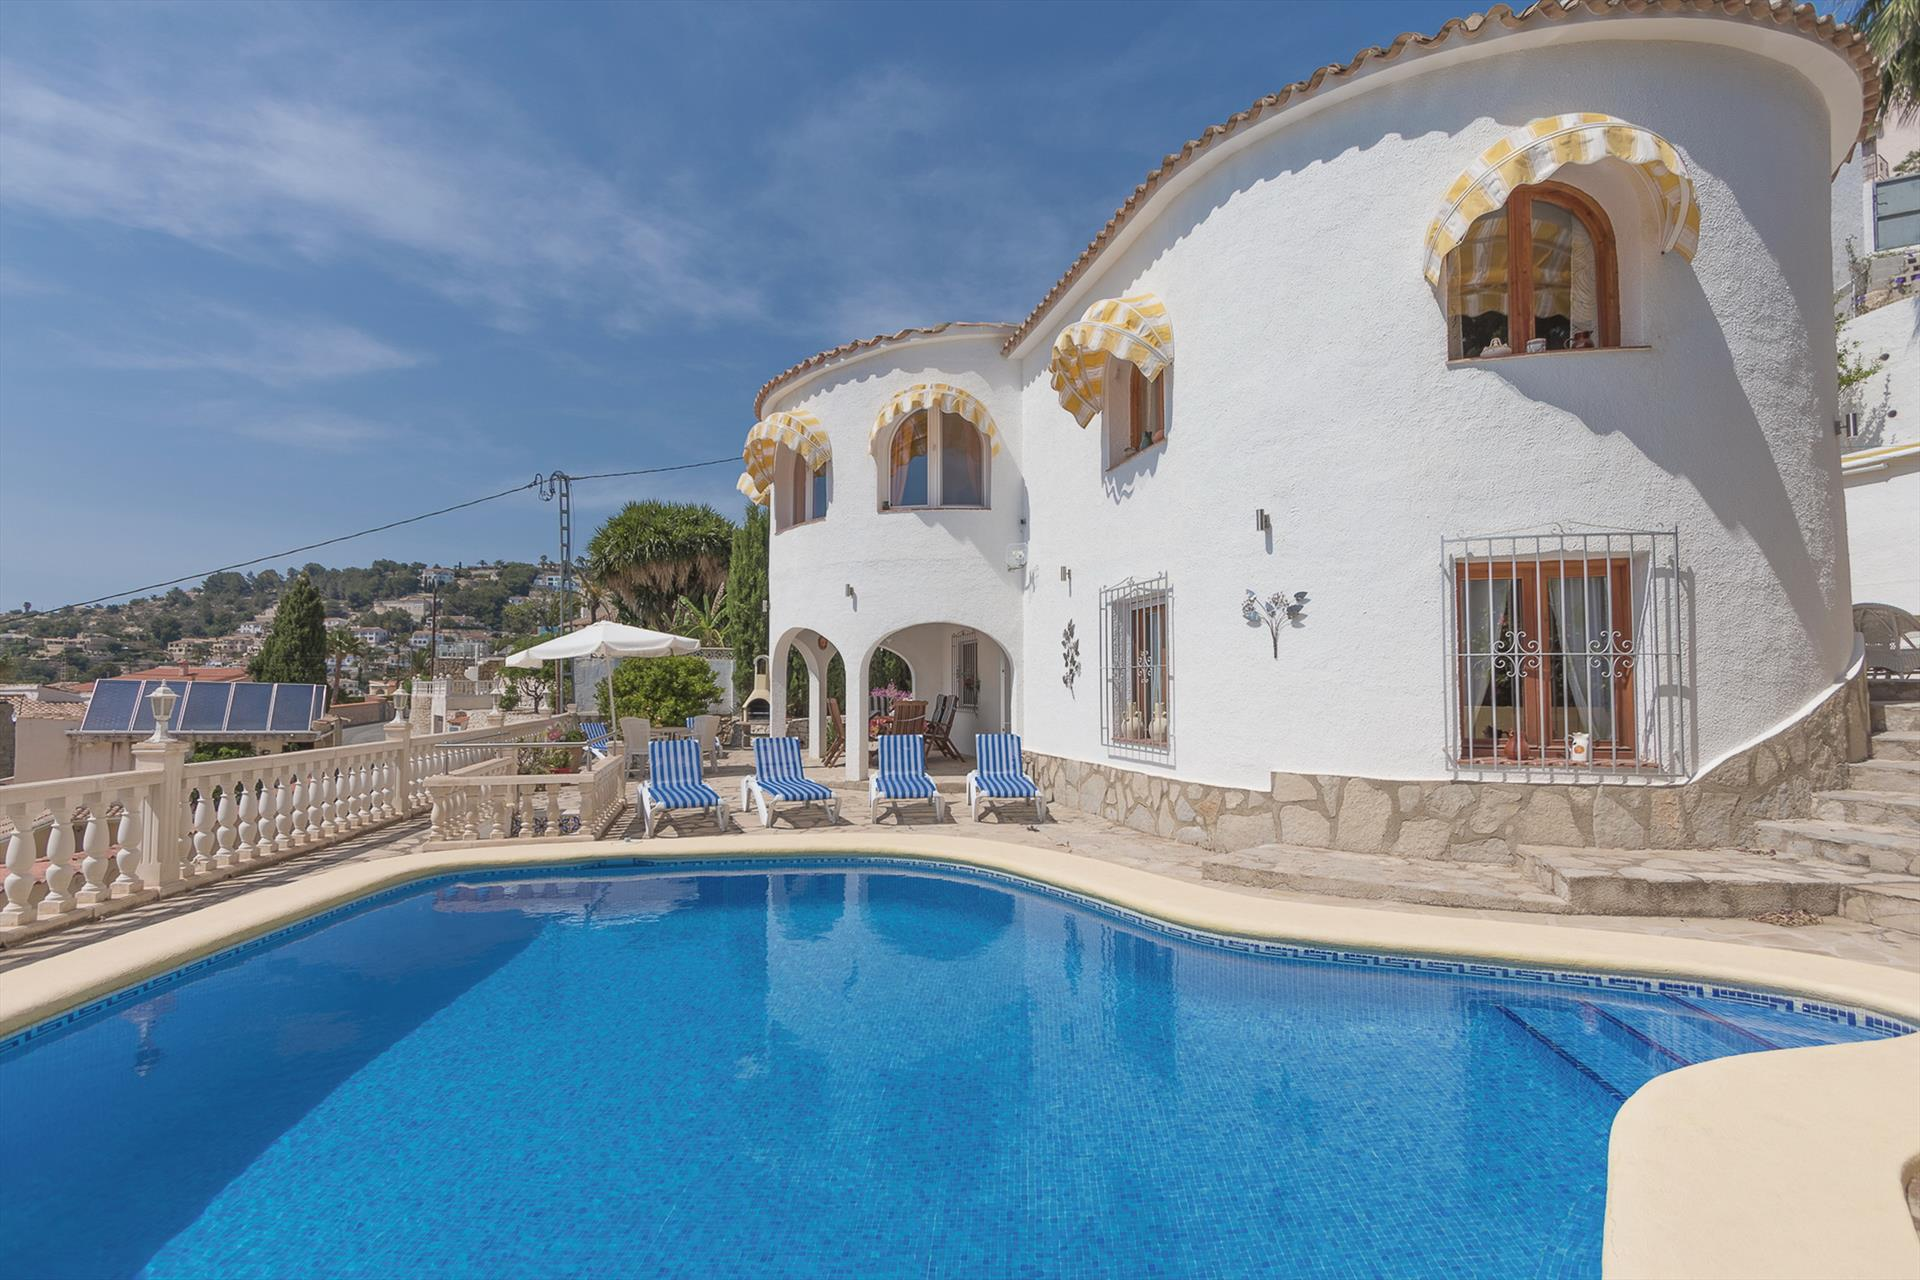 Bellavista 4P, Classic and comfortable villa in Benissa, on the Costa Blanca, Spain  with private pool for 4 persons.....